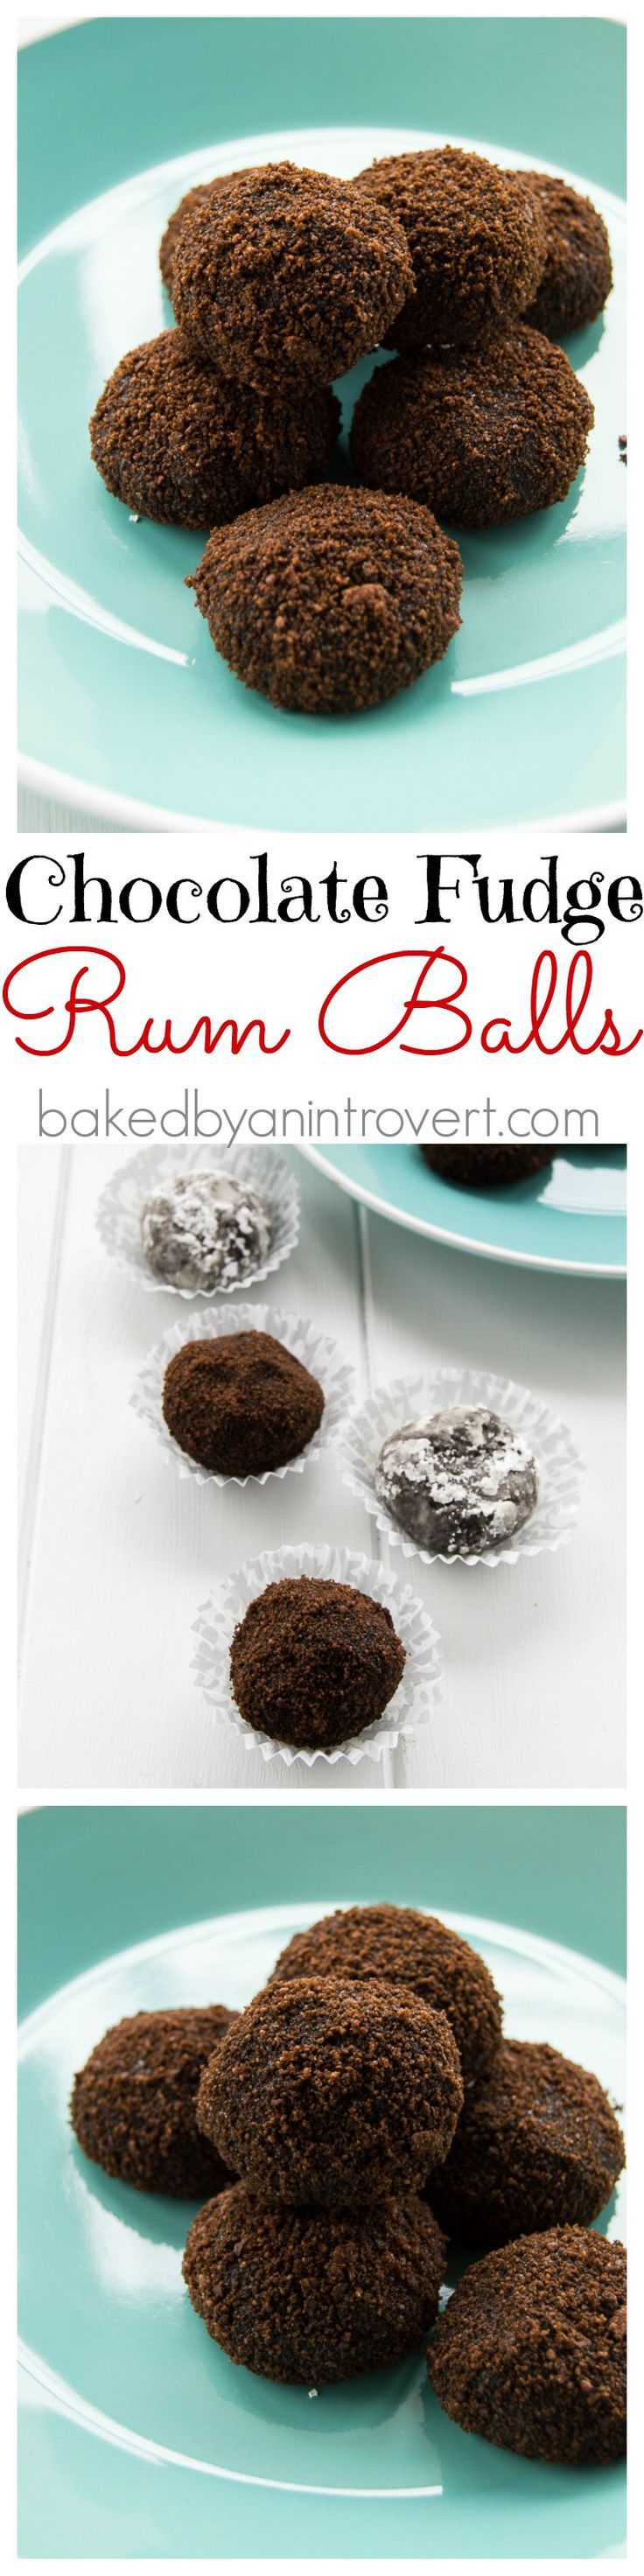 how to make rum balls with cake